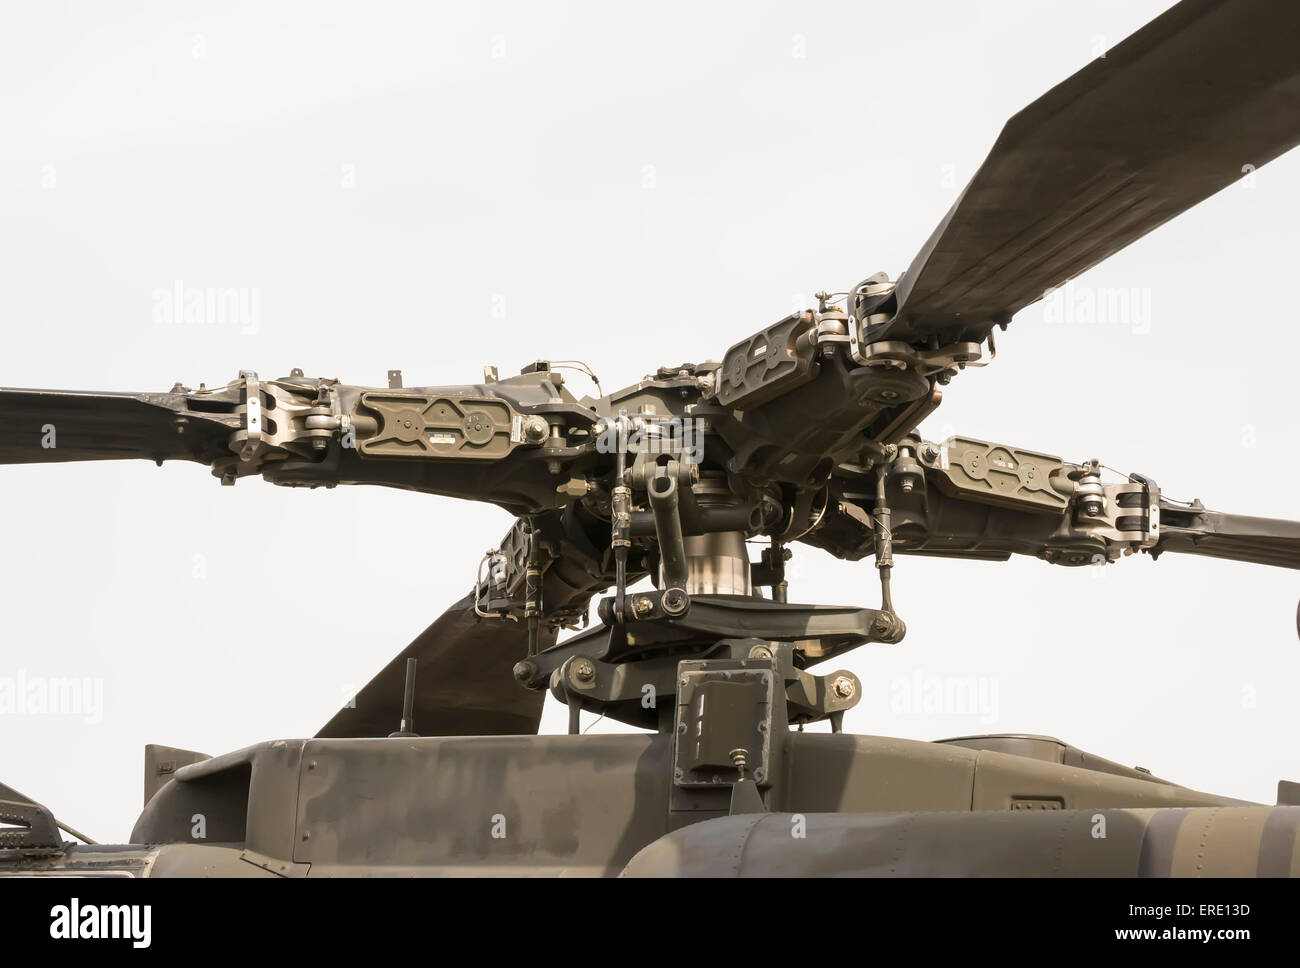 Modern attack helicopter main rotor mechanism with four blades - Stock Image